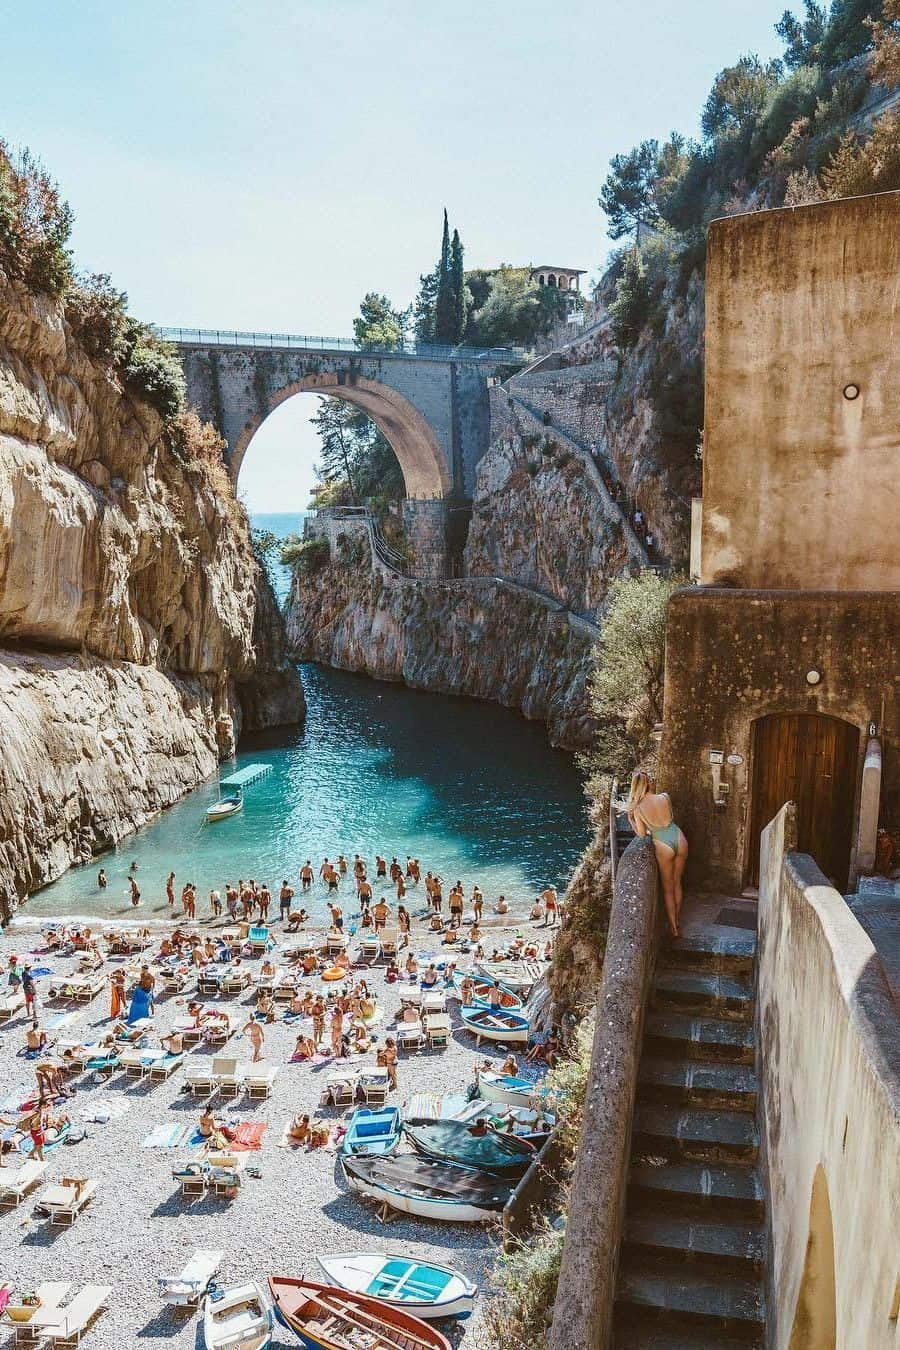 Things to see in Furore Italy, the most beautiful beach in the world, #Furore #Italy